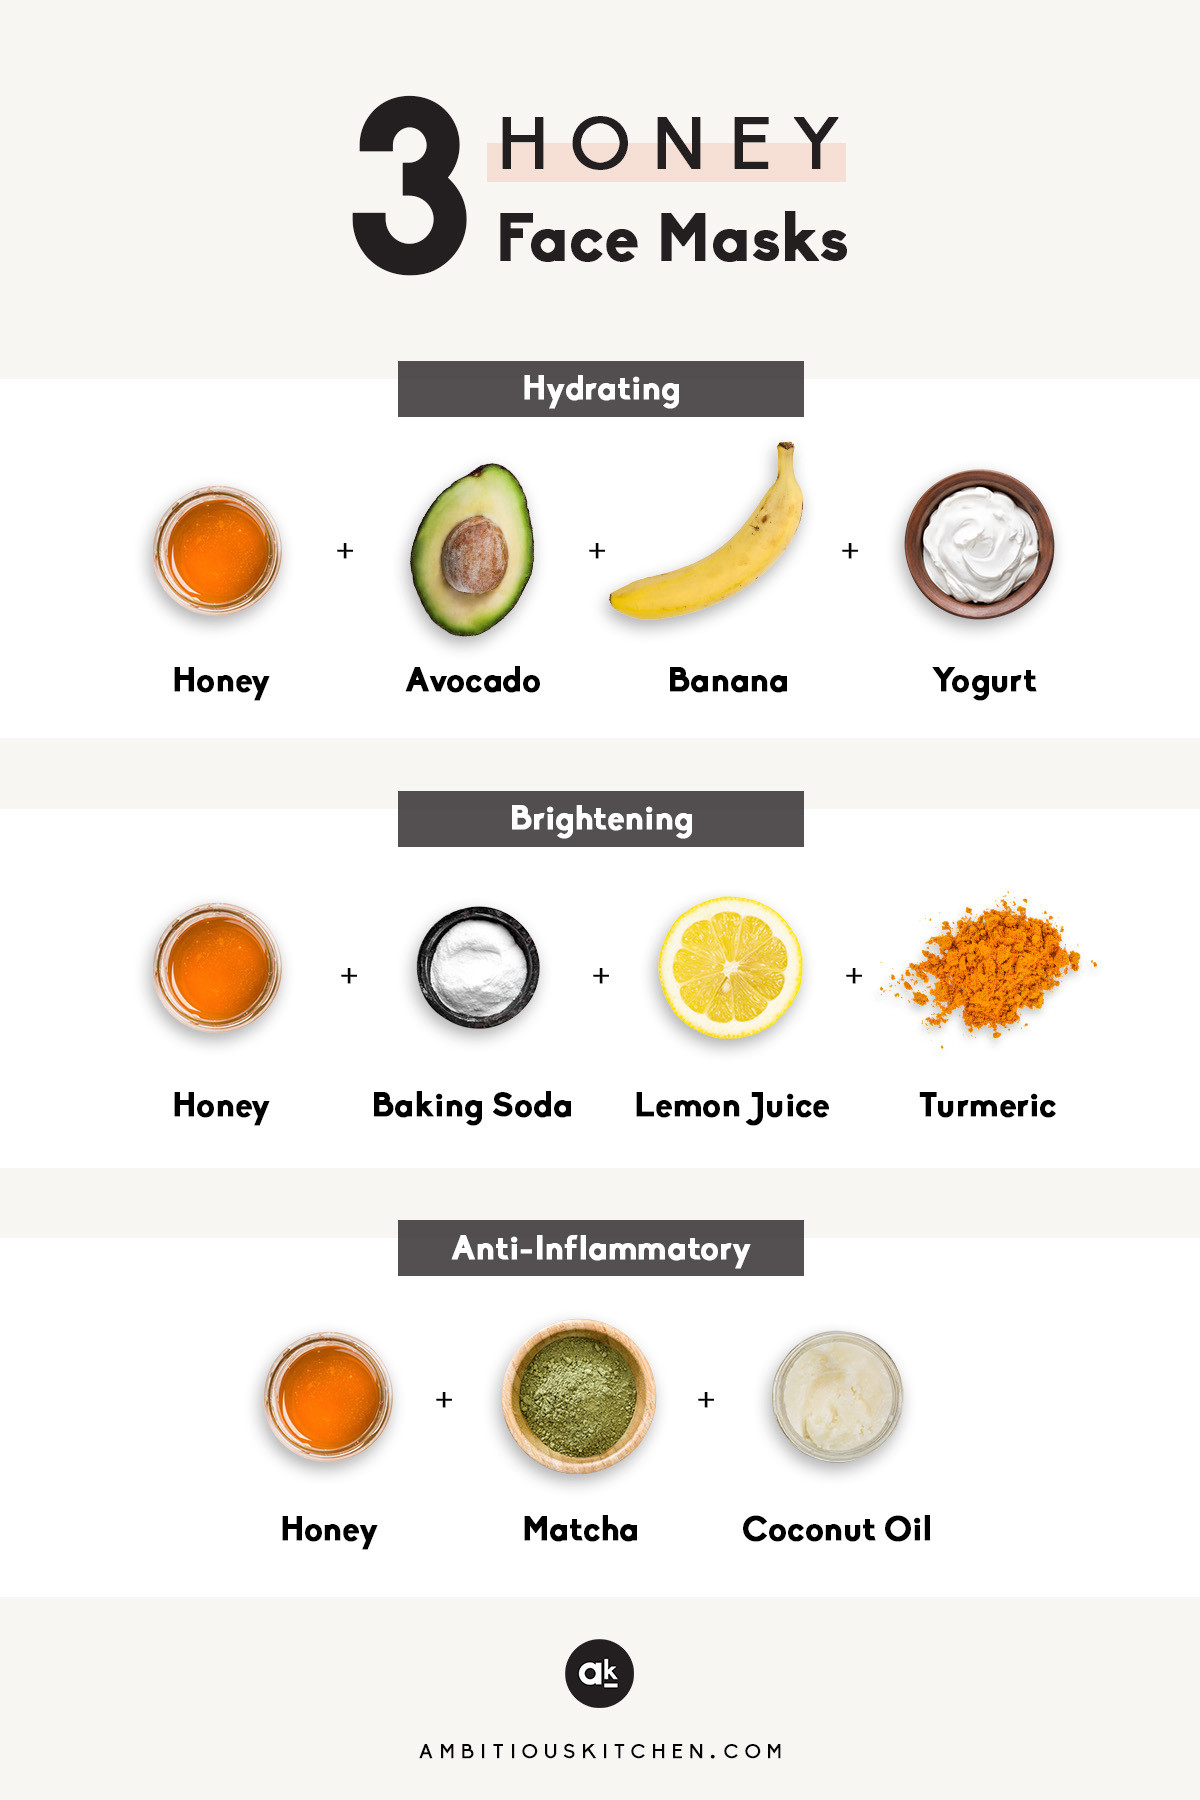 Best ideas about DIY Face Mask With Honey . Save or Pin 3 DIY Honey Face Masks video Now.